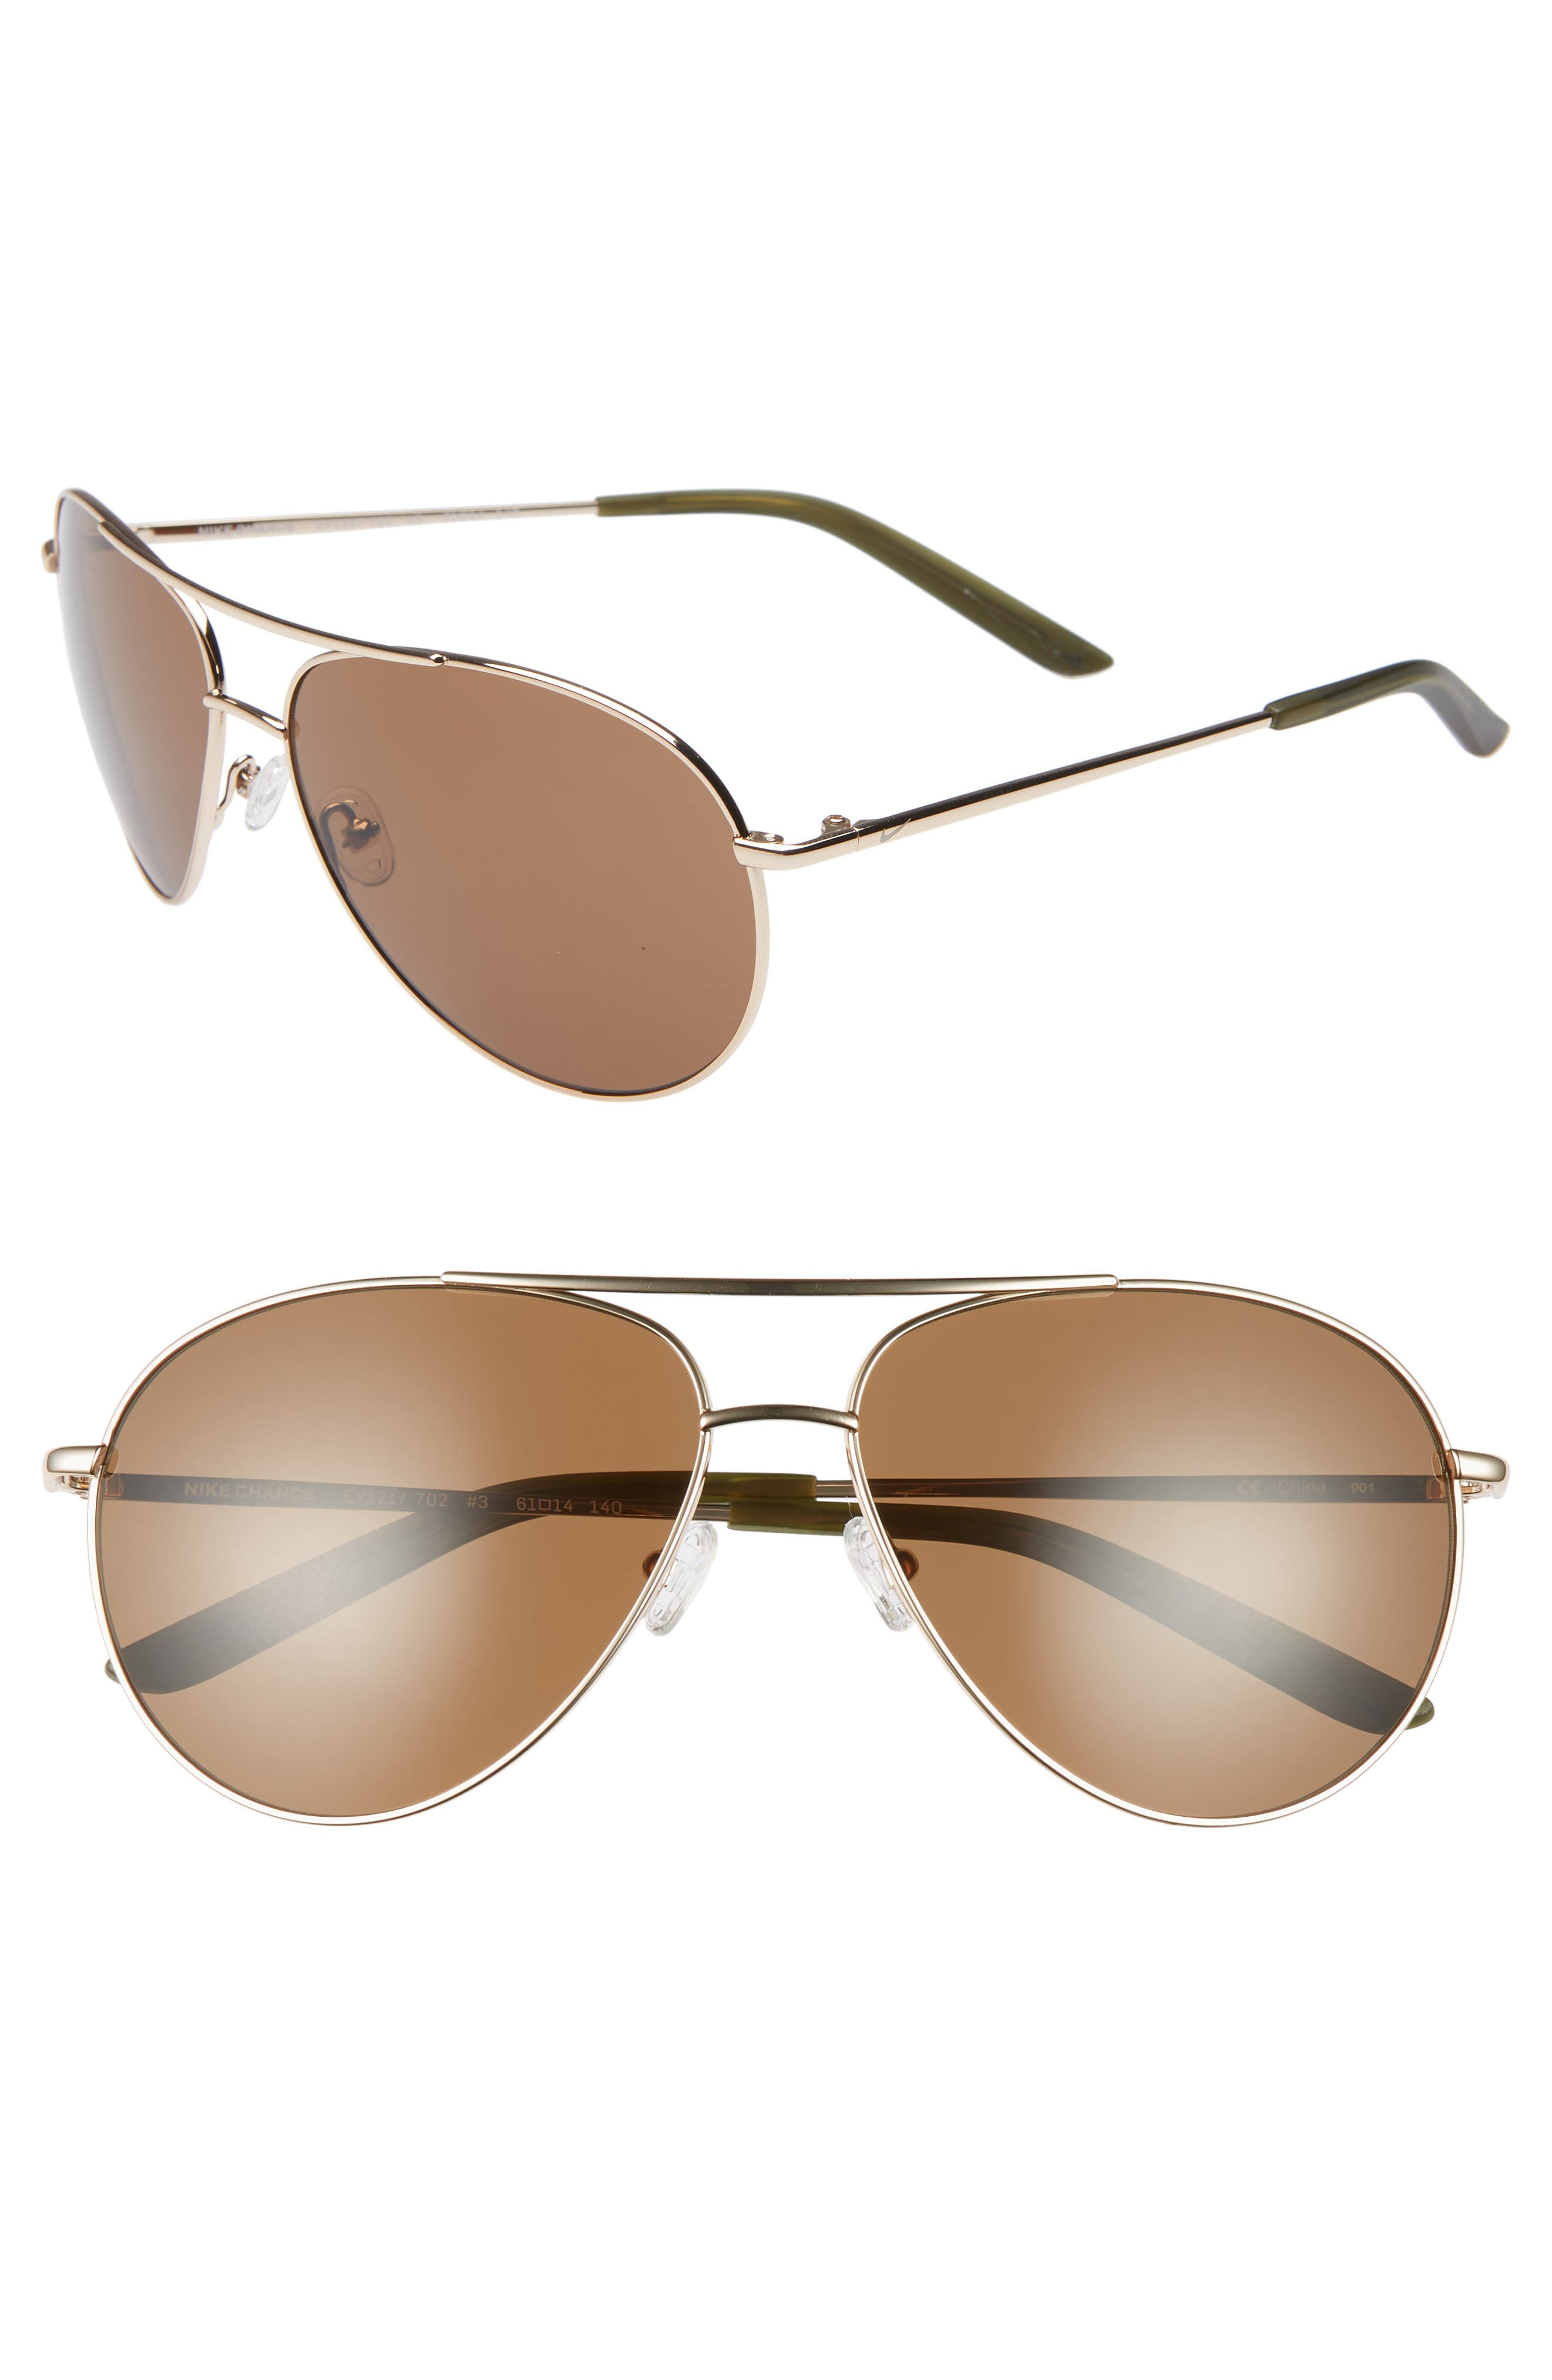 Nike Chance 61Mm Aviator Sunglasses - Light Gold/ Brown